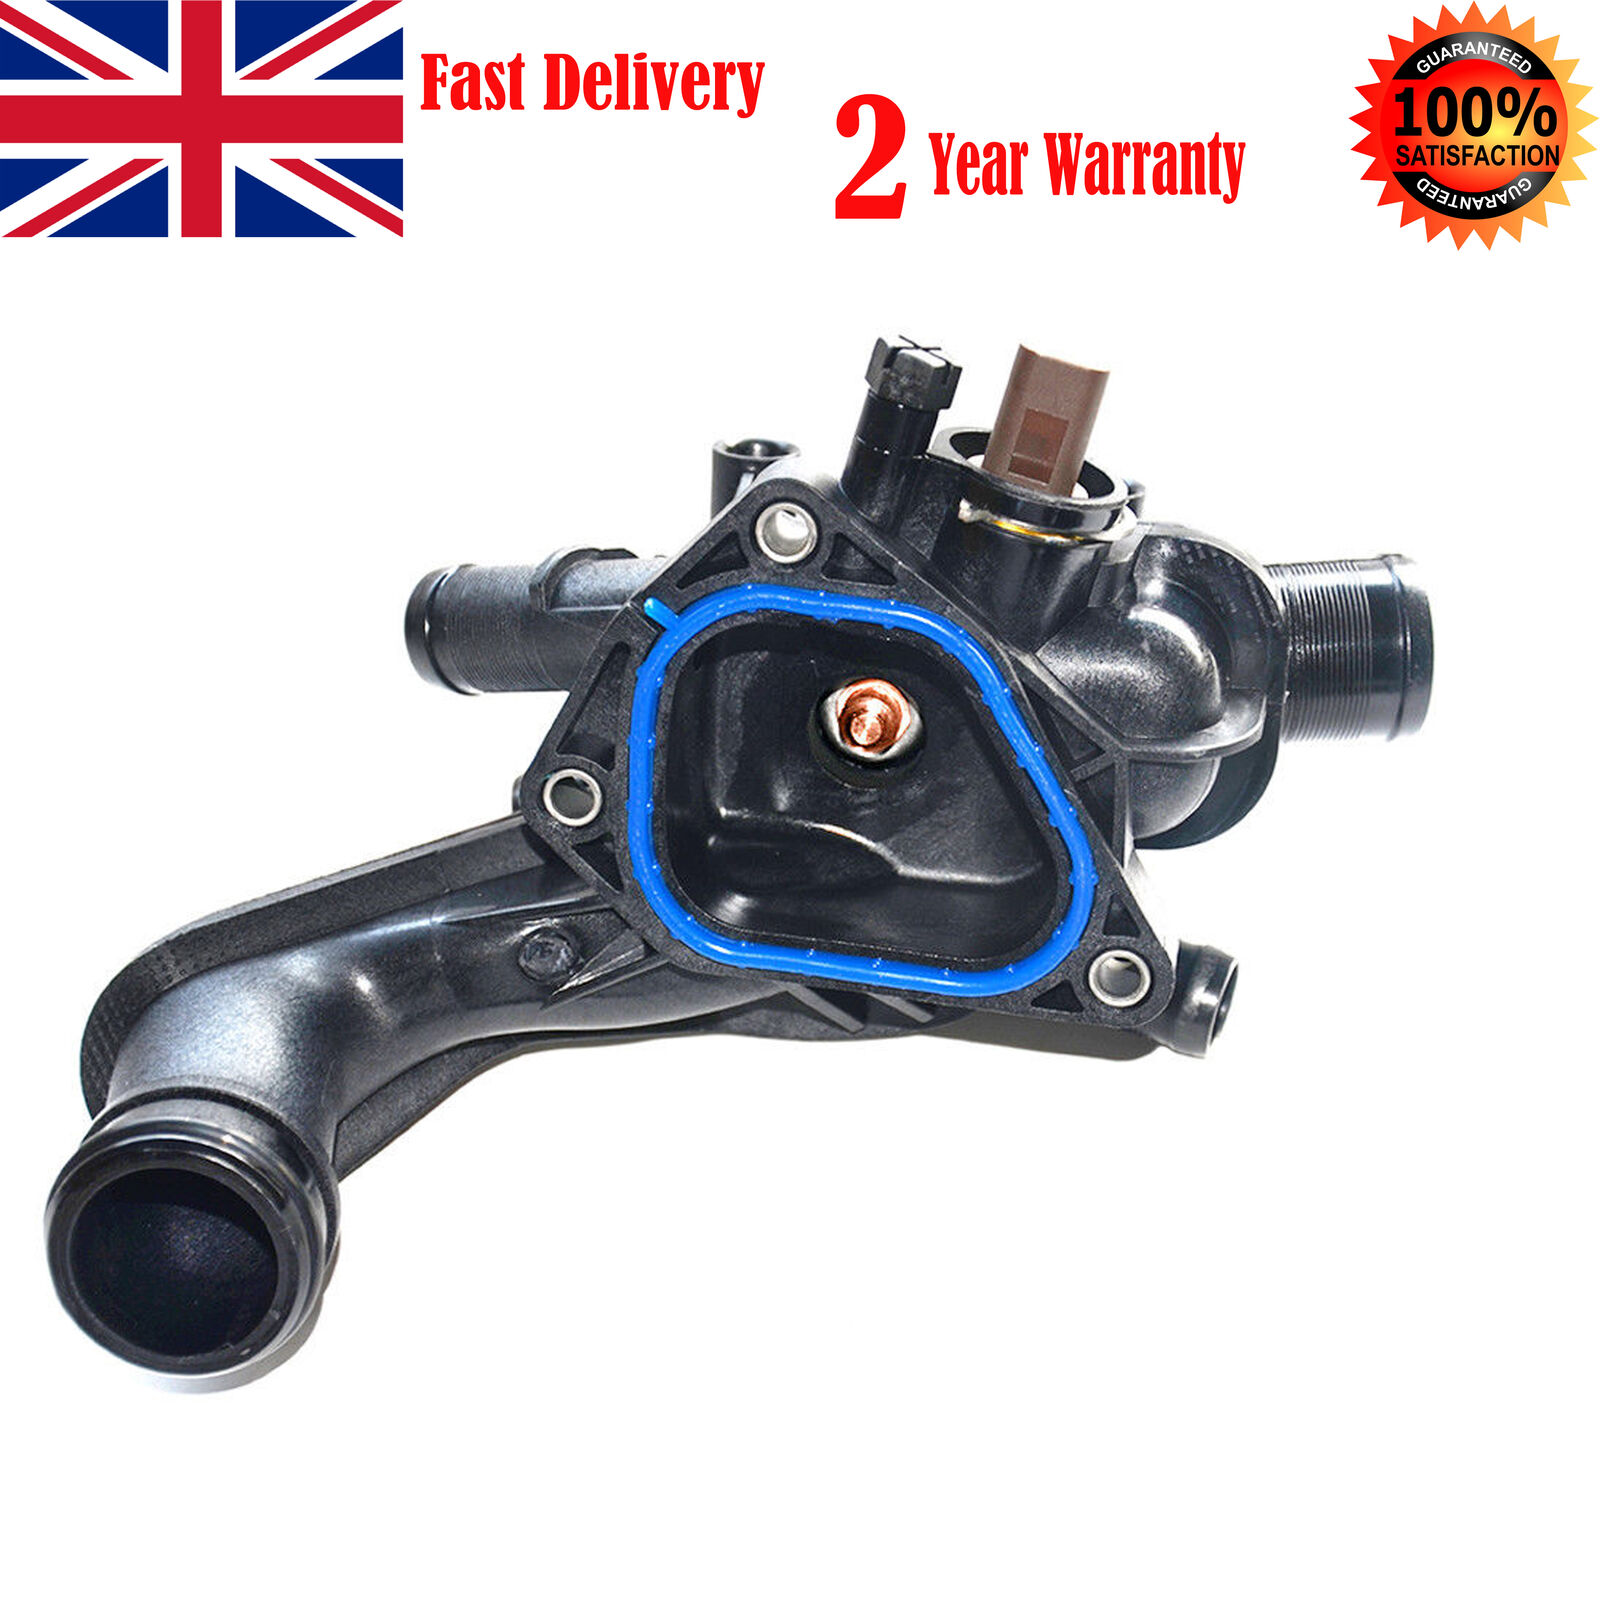 Genuine Thermostat /& Housing Mini R55 R56 R57 One Cooper S /& JCW 1.4 1.6 Petrol